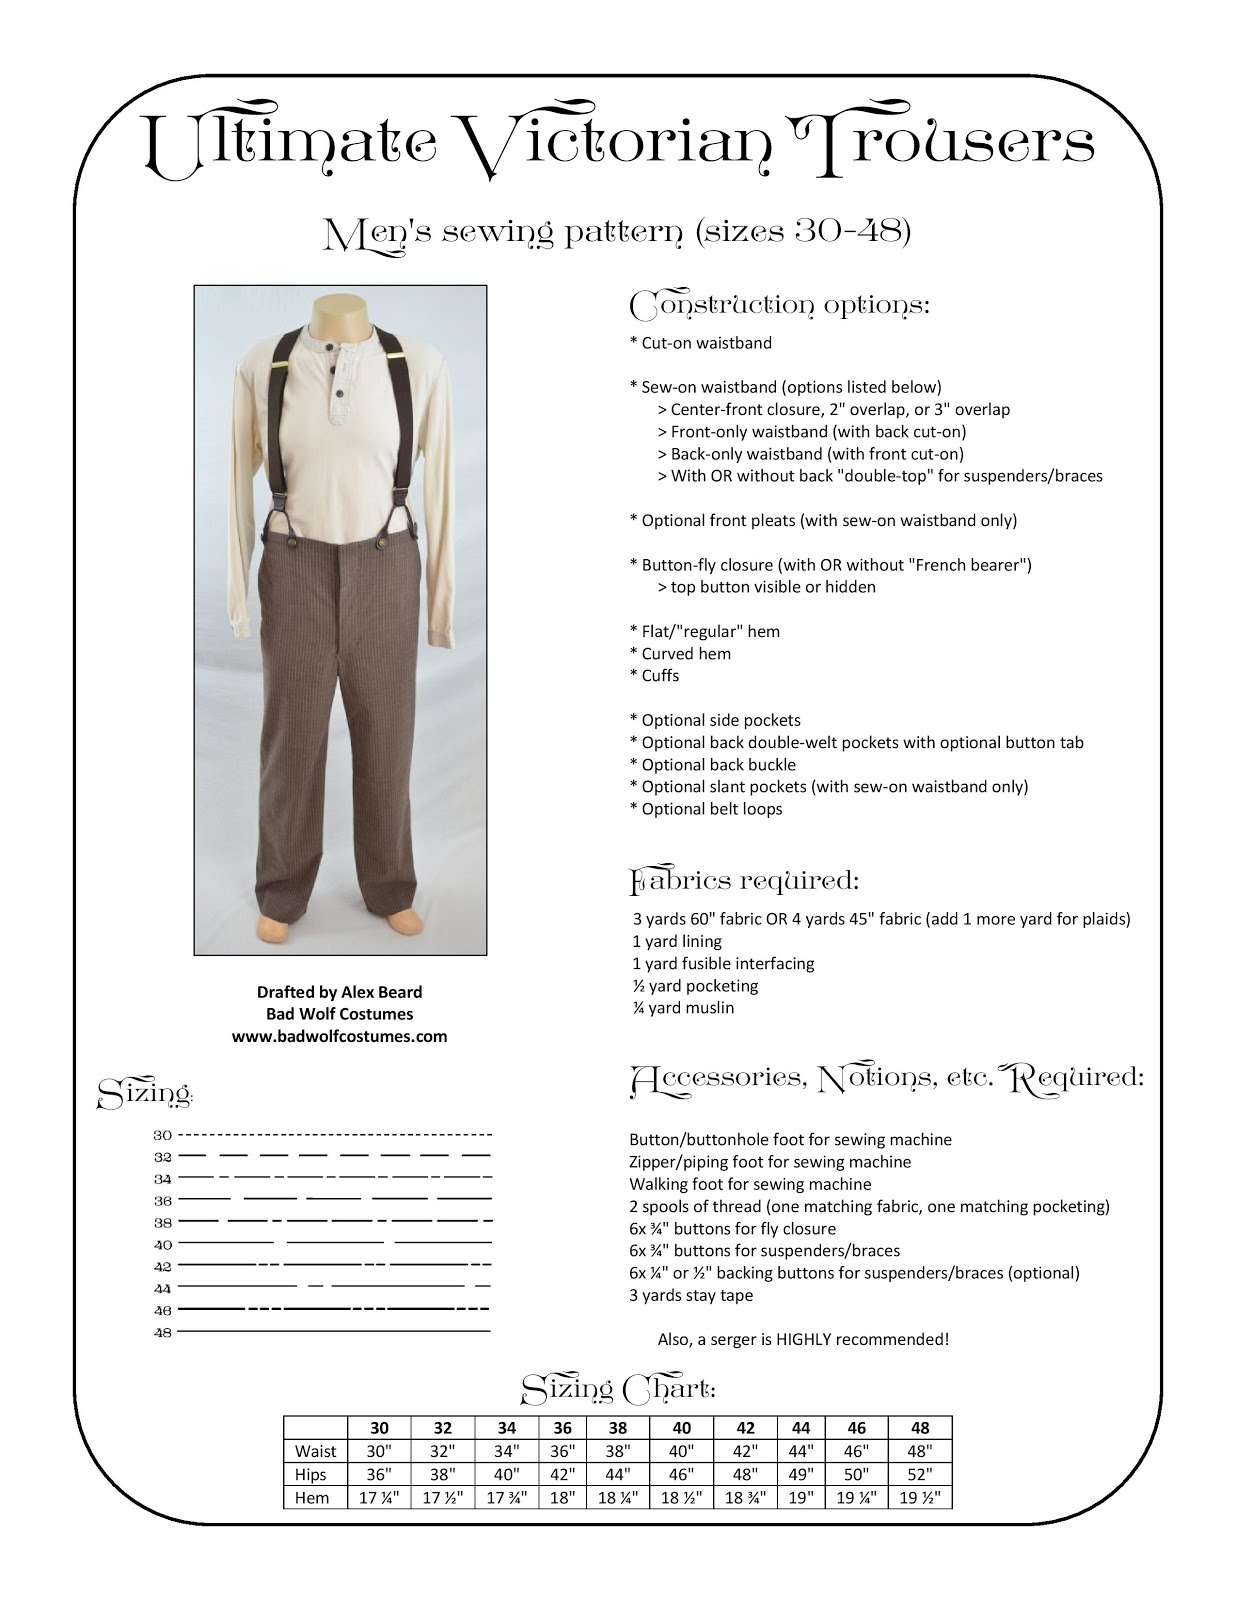 Ultimate Victorian Trousers Sewing Pattern